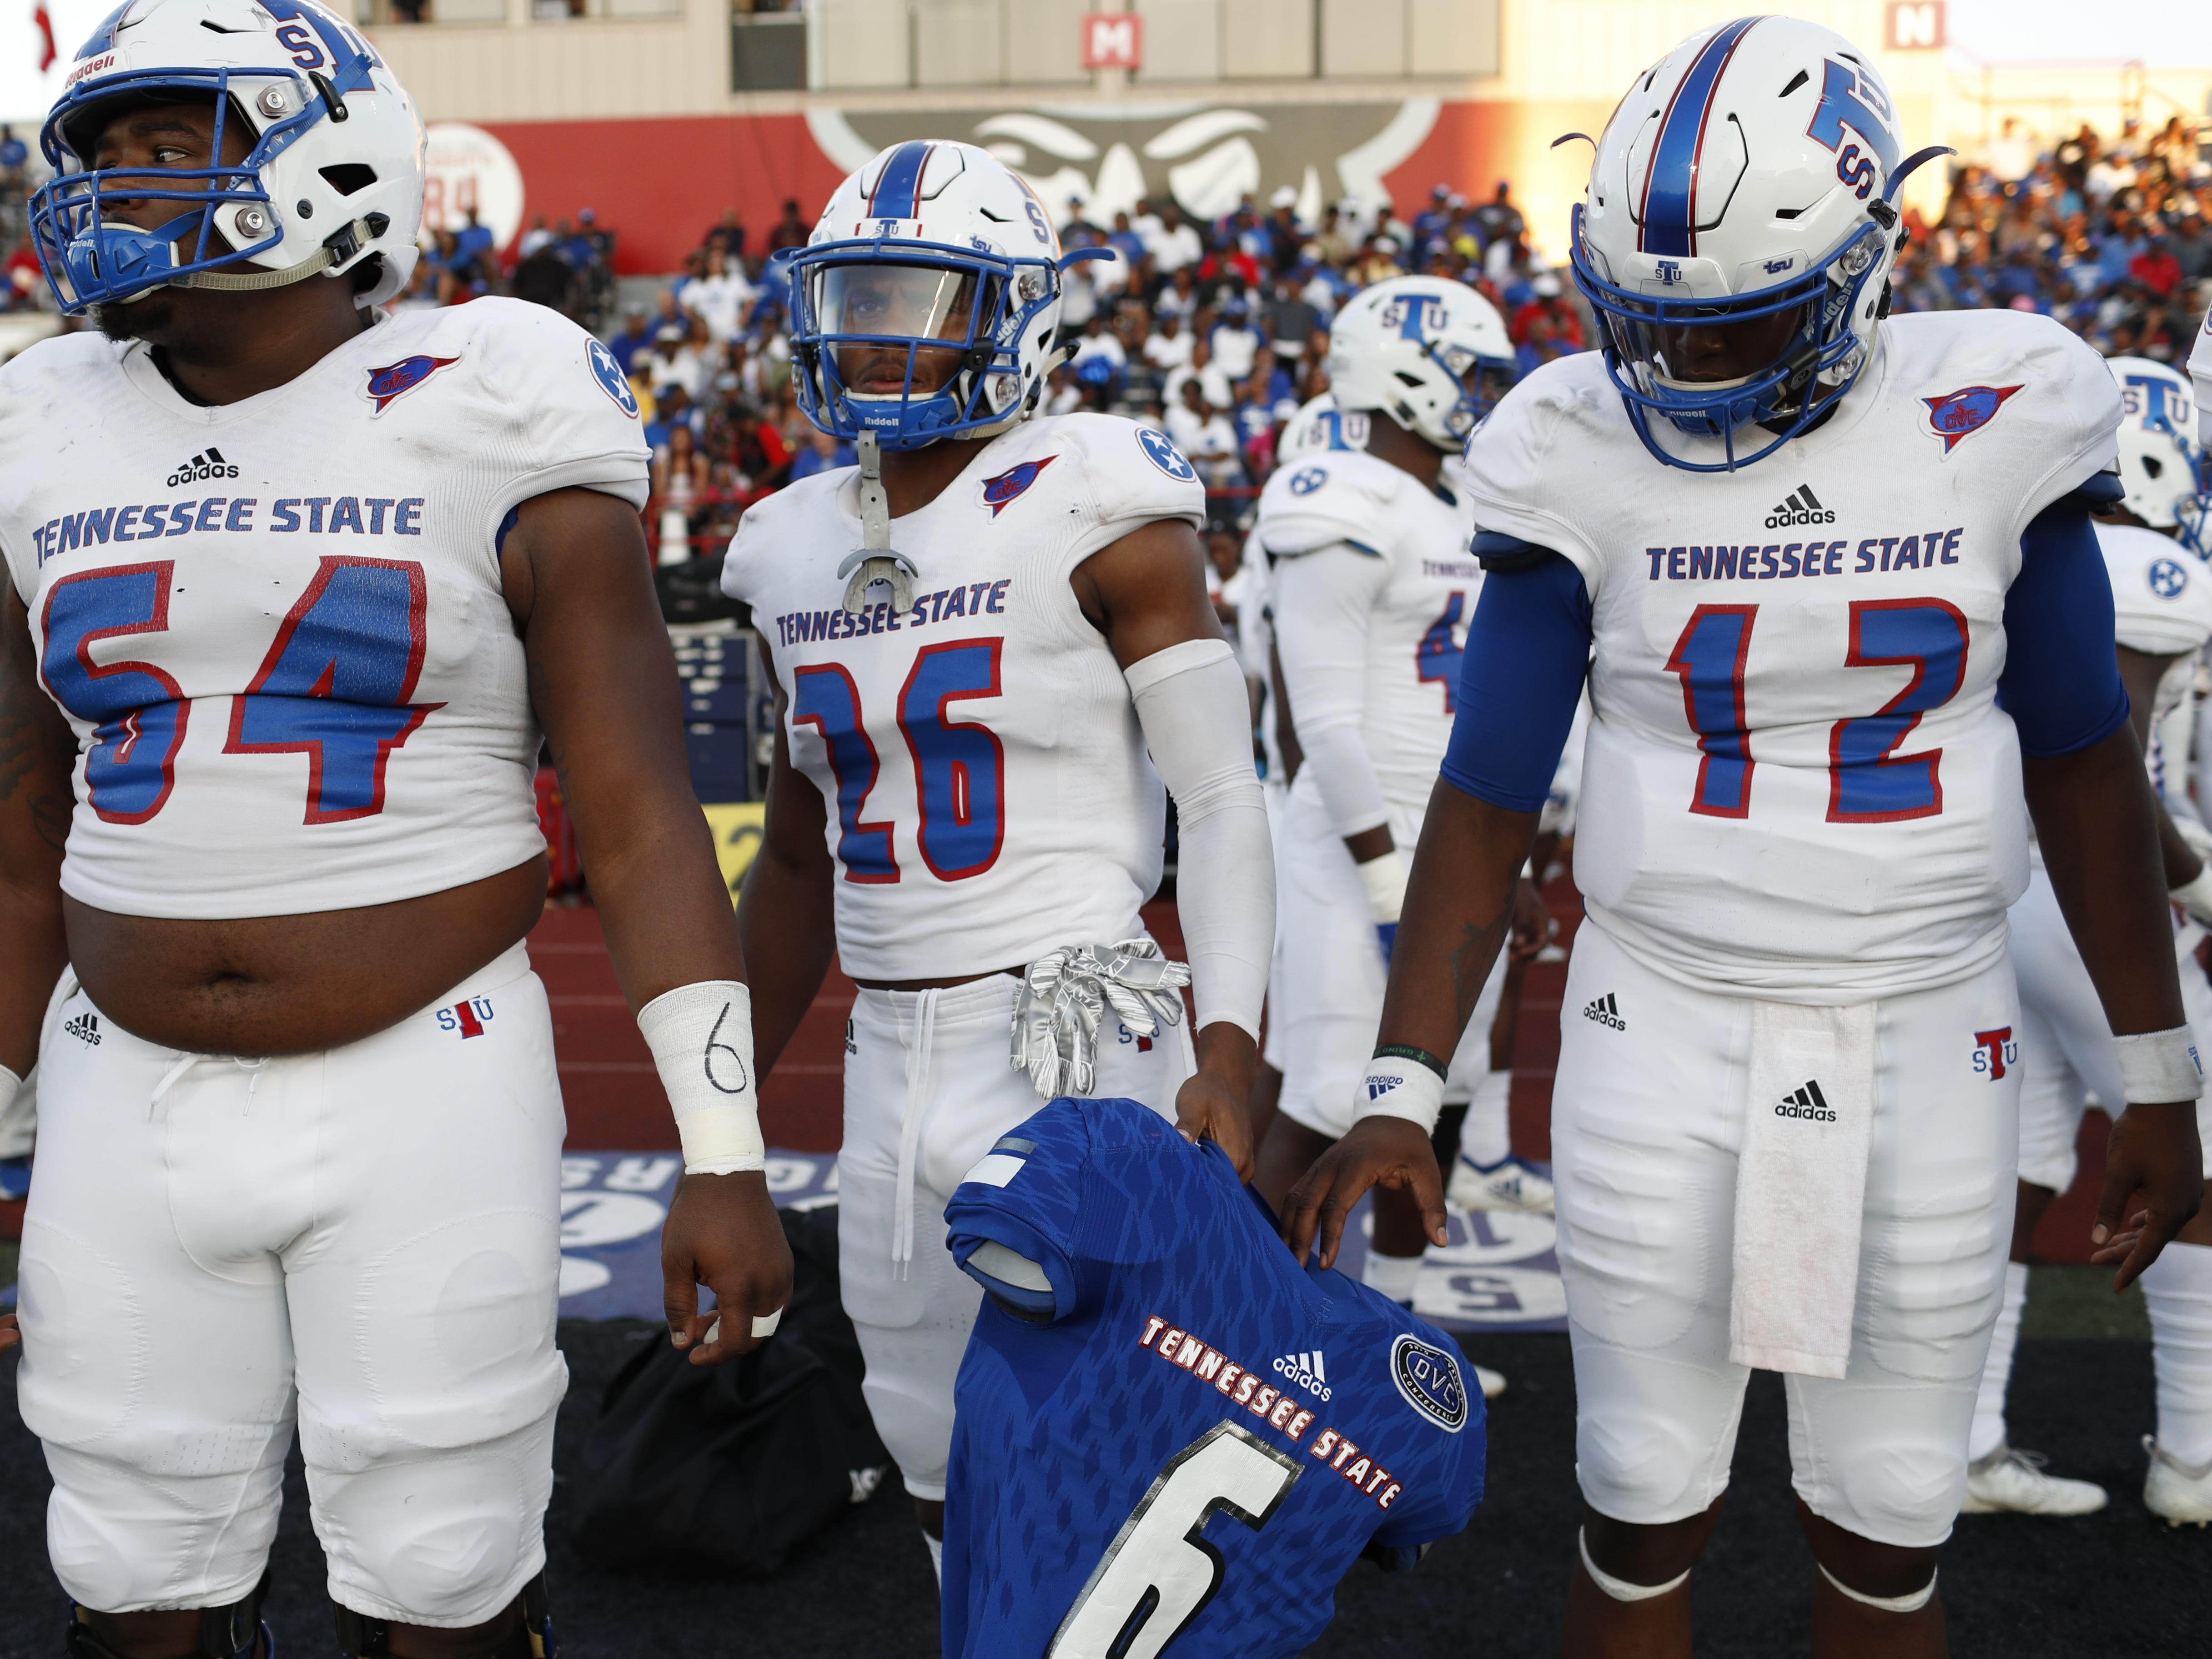 Tennessee State football's captains bring the shoulder pads and jersey of Christion Abercrombie to the coin toss before the Tigers' game at Austin Peay on Saturday, October 6, 2018.